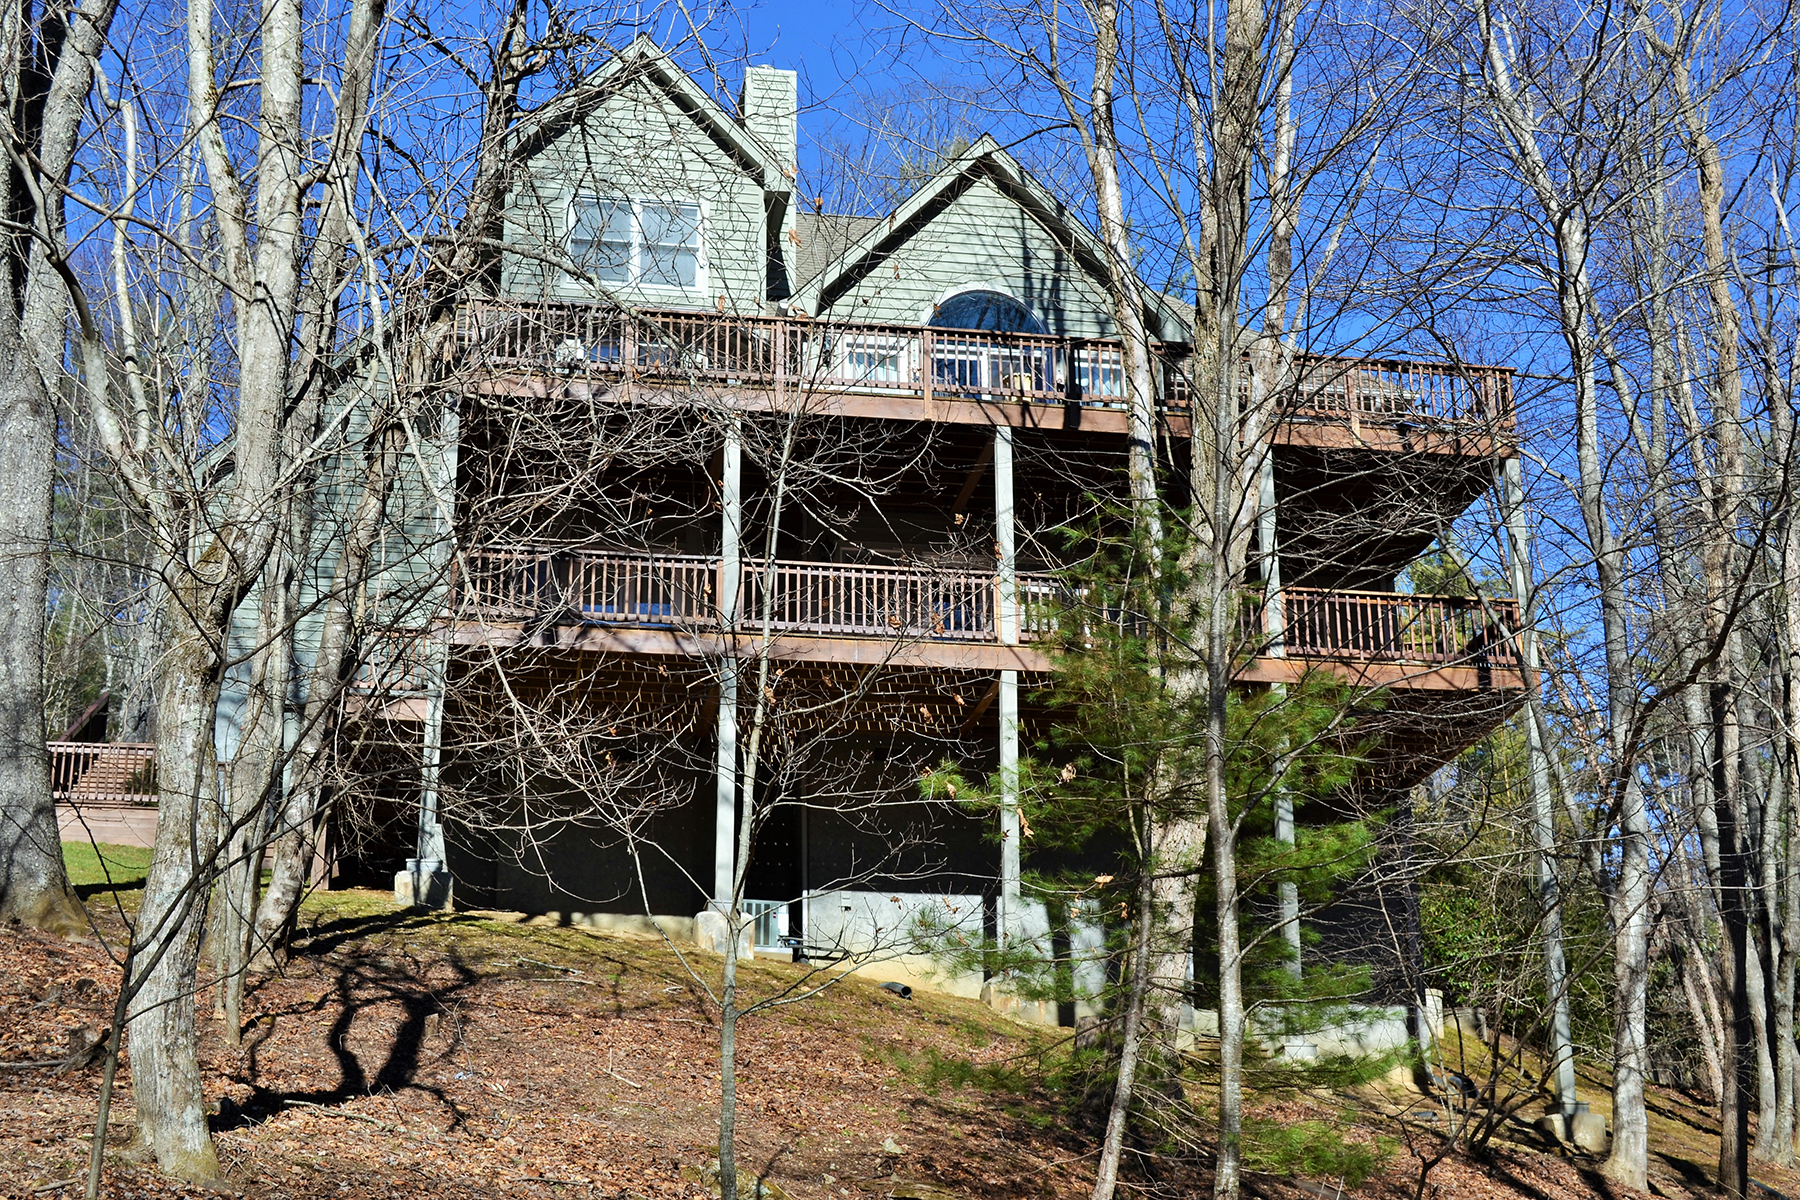 Single Family Home for Sale at BLOWING ROCK - BISHOPS RIDGE 391 Bishops Ridge, Blowing Rock, North Carolina 28605 United States